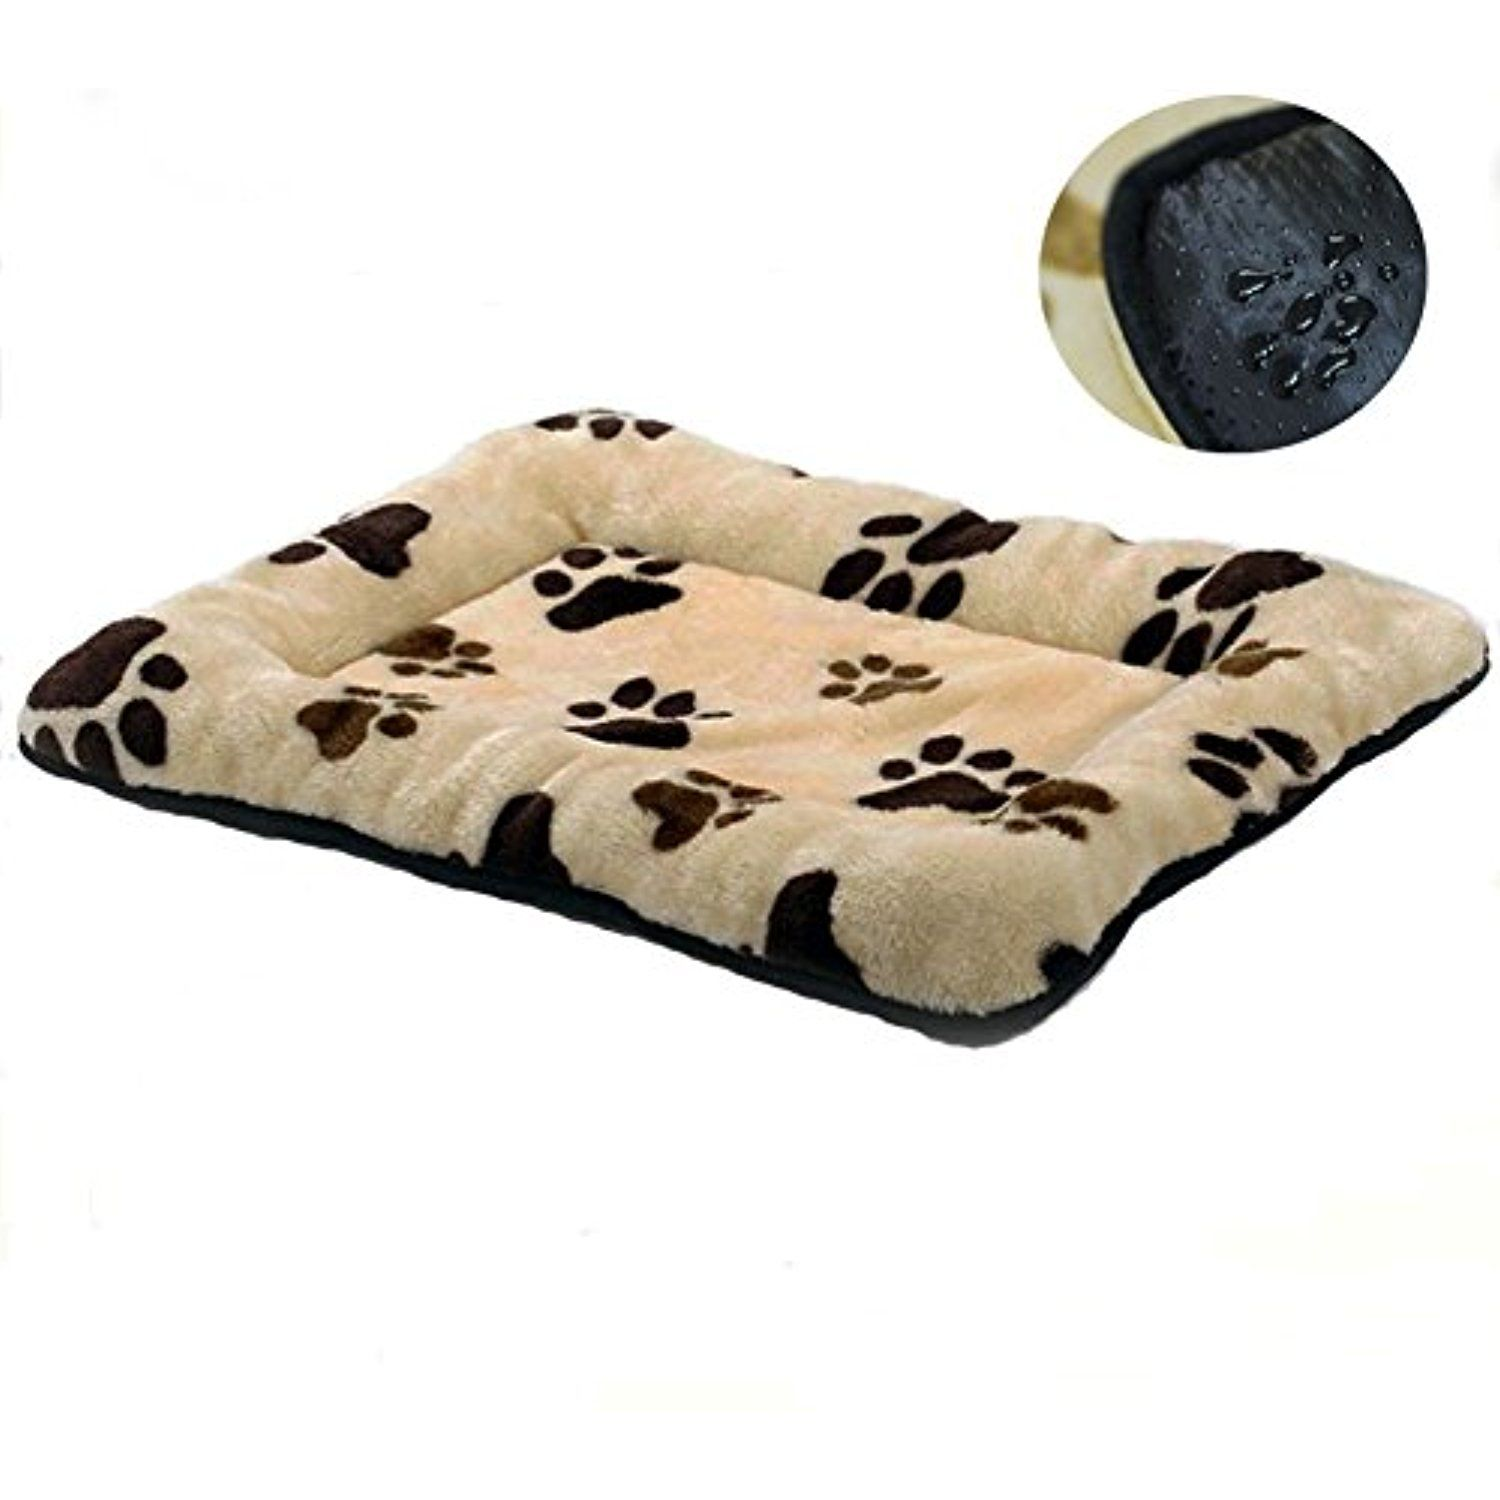 Hualan Pet Crate Mattress Dog Cat Cage Mat Cusion Washable Kennel Pads 30 X 20 Click Image For More Details This Is An A Cat Cages Pet Crate Kennel Pad